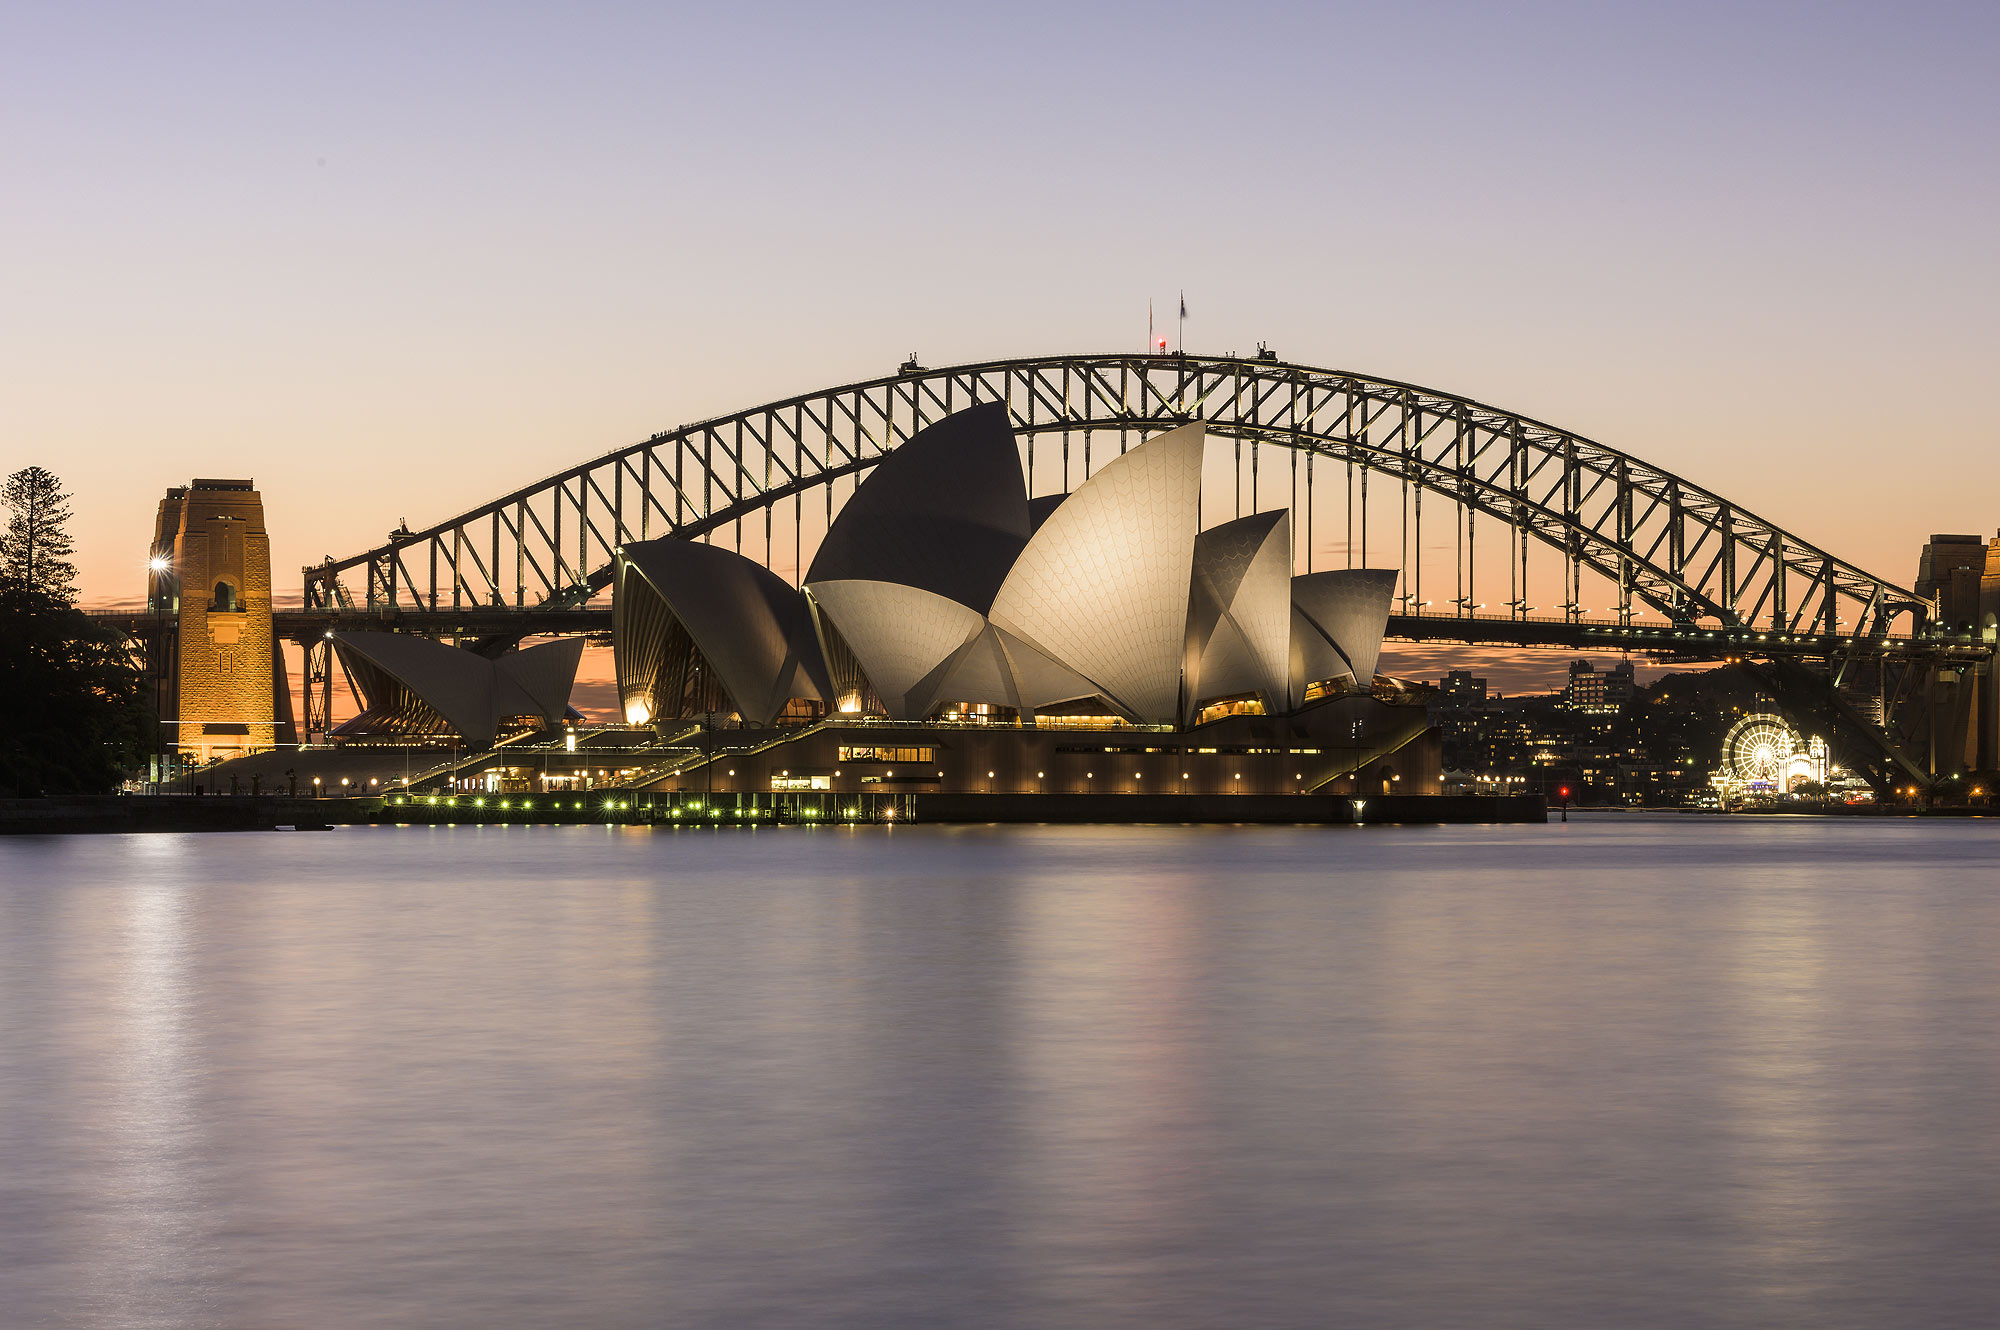 Sunset, Sydney Harbour Cruise, Opera House, Harbour Bridge